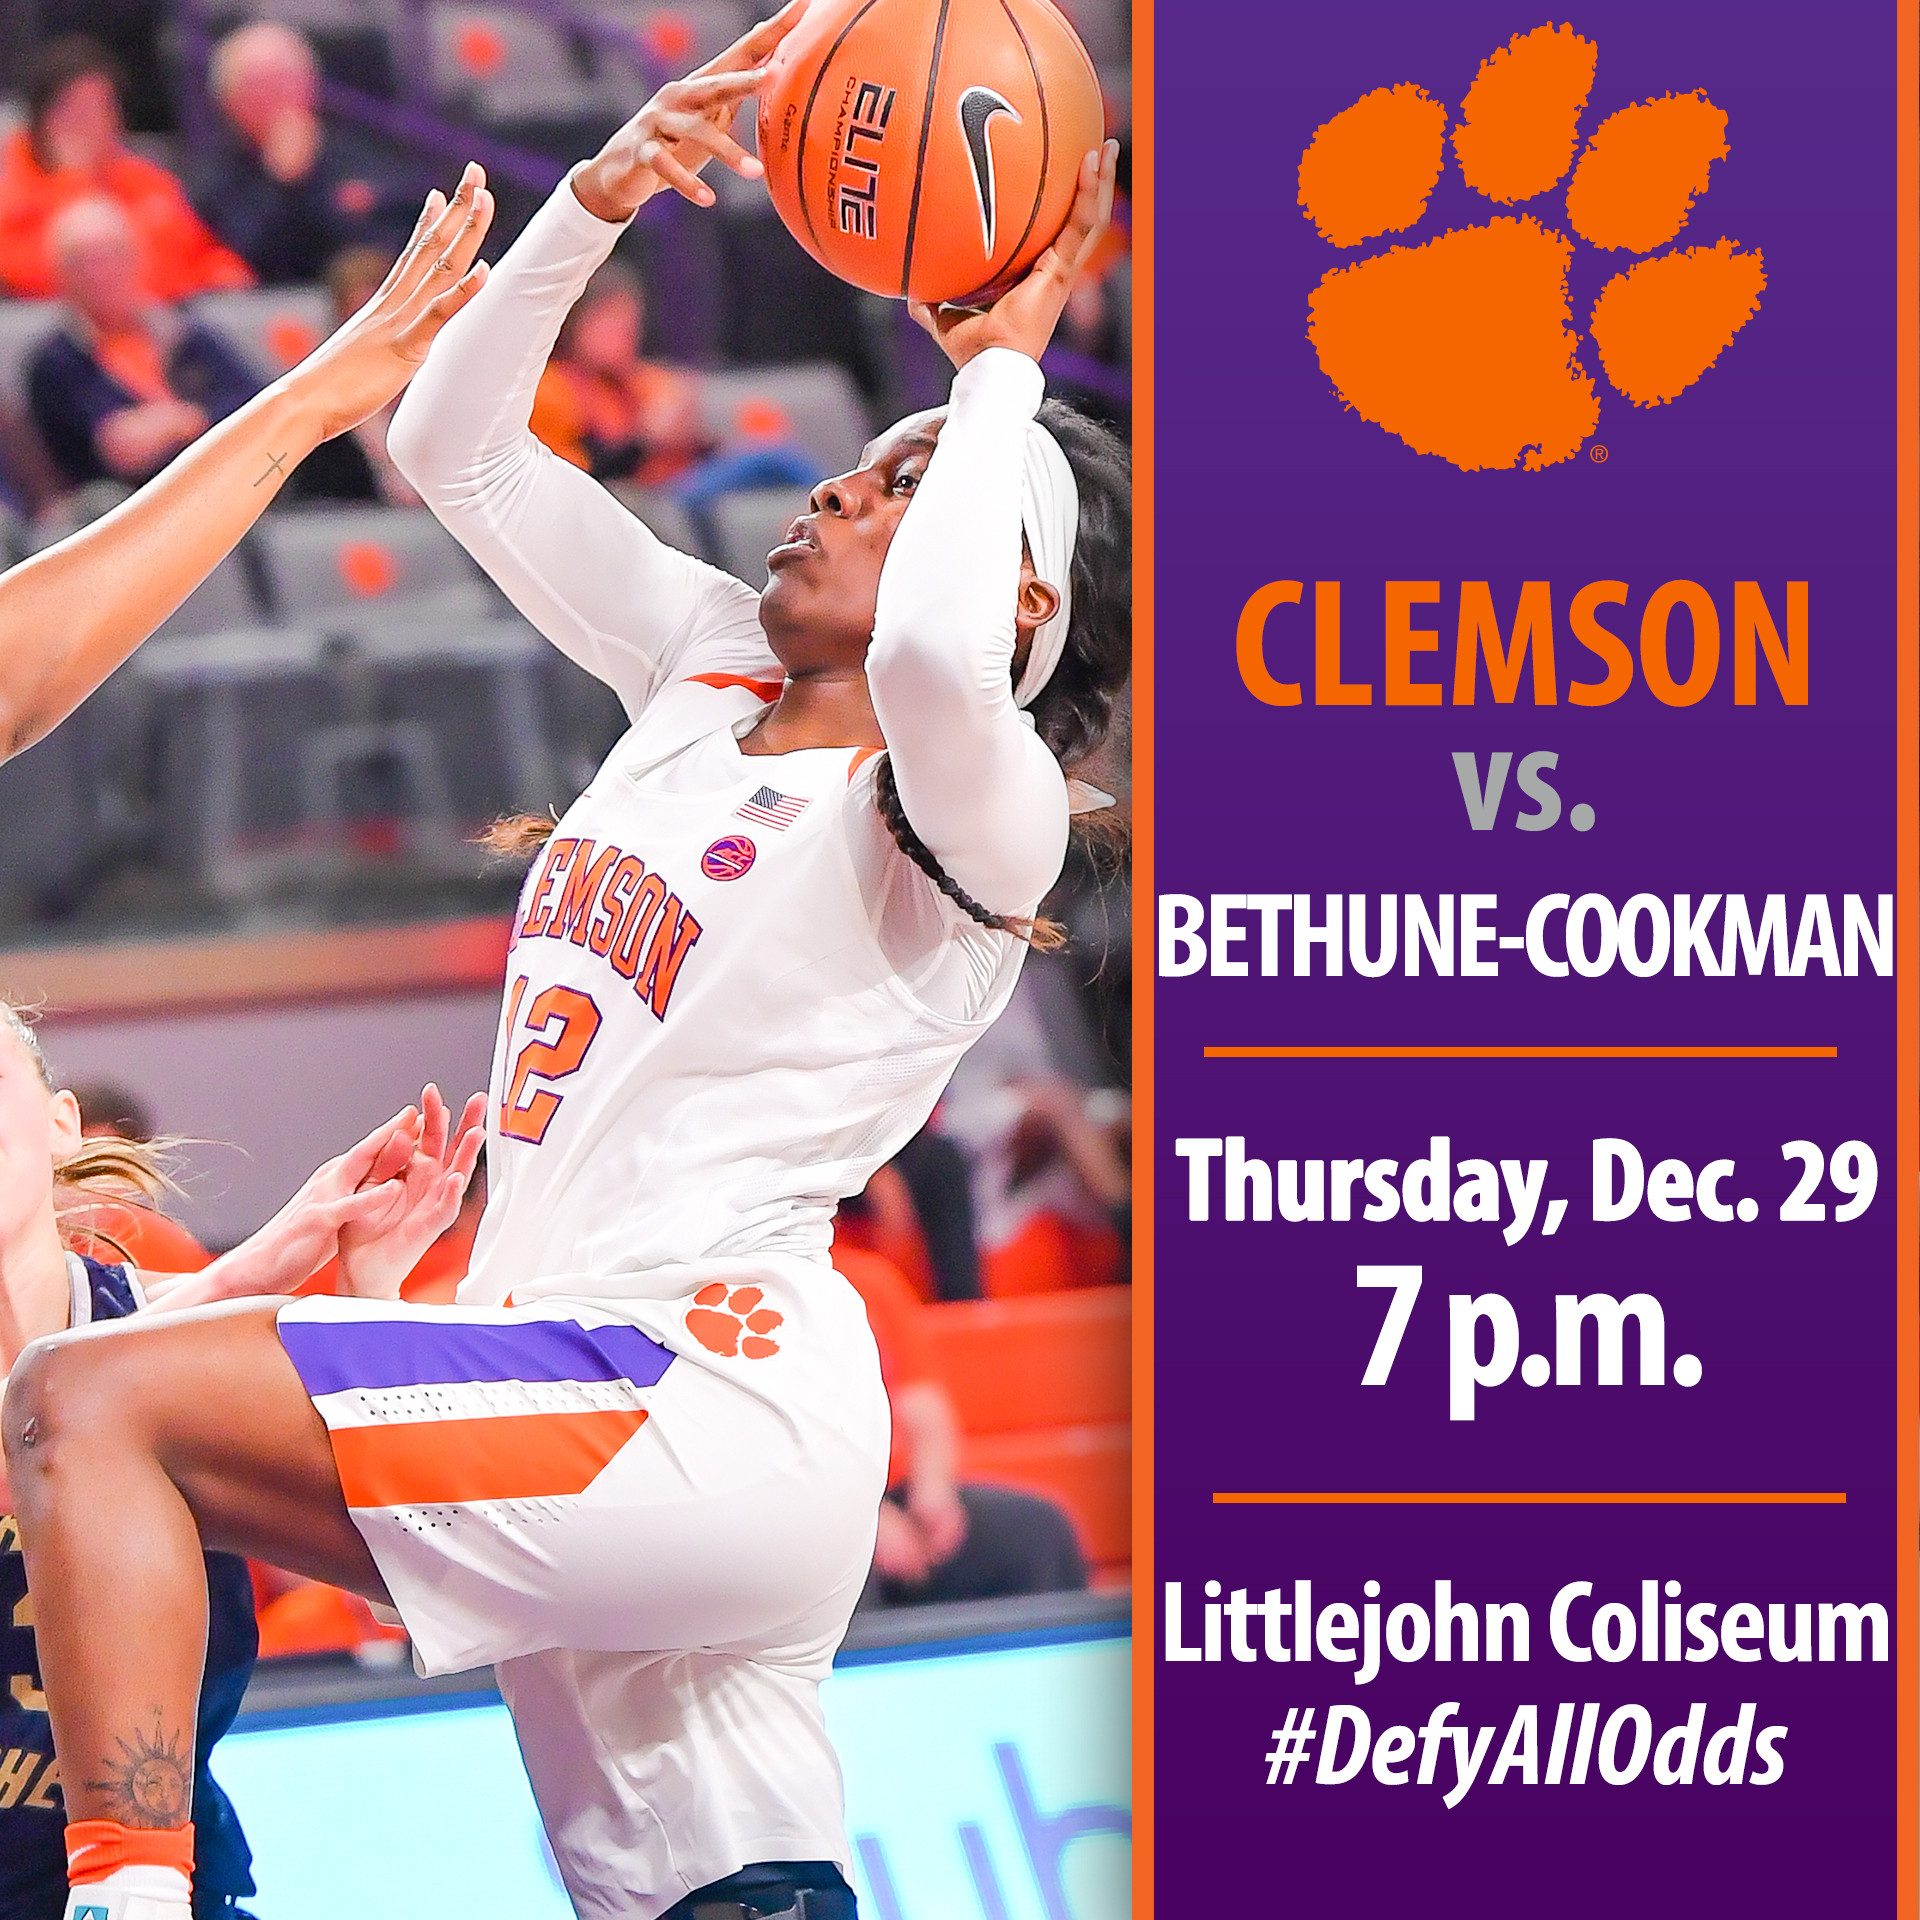 Tigers Host Bethune-Cookman in Final Nonconference Game Thursday